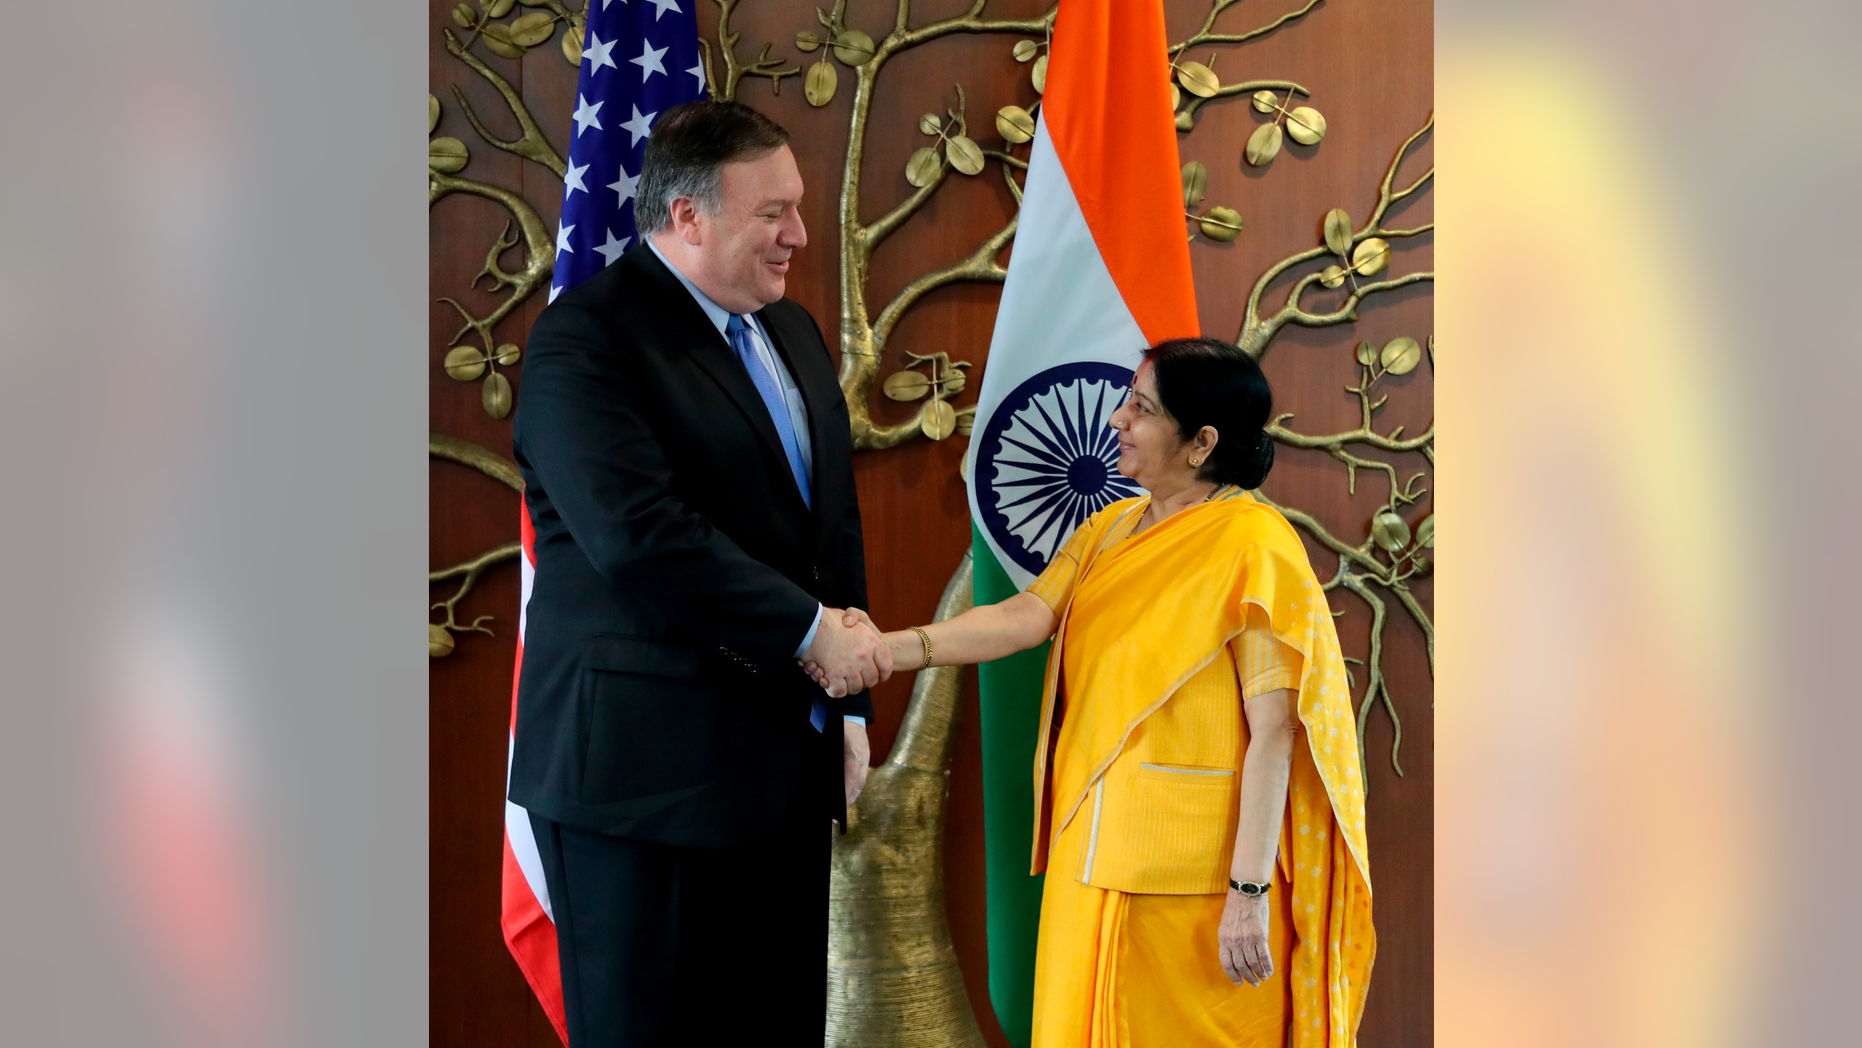 U.S. Secretary of State Mike Pompeo, left, shakes hand with Indian Foreign Minister Sushma Swaraj before a meeting in New Delhi, India, Thursday, Sept. 6, 2018. Pompeo and Defense Secretary James Mattis are holding long-delayed talks Thursday with top Indian officials, looking to shore up the alliance with one of Washington's top regional allies. (AP Photo/Manish Swarup)